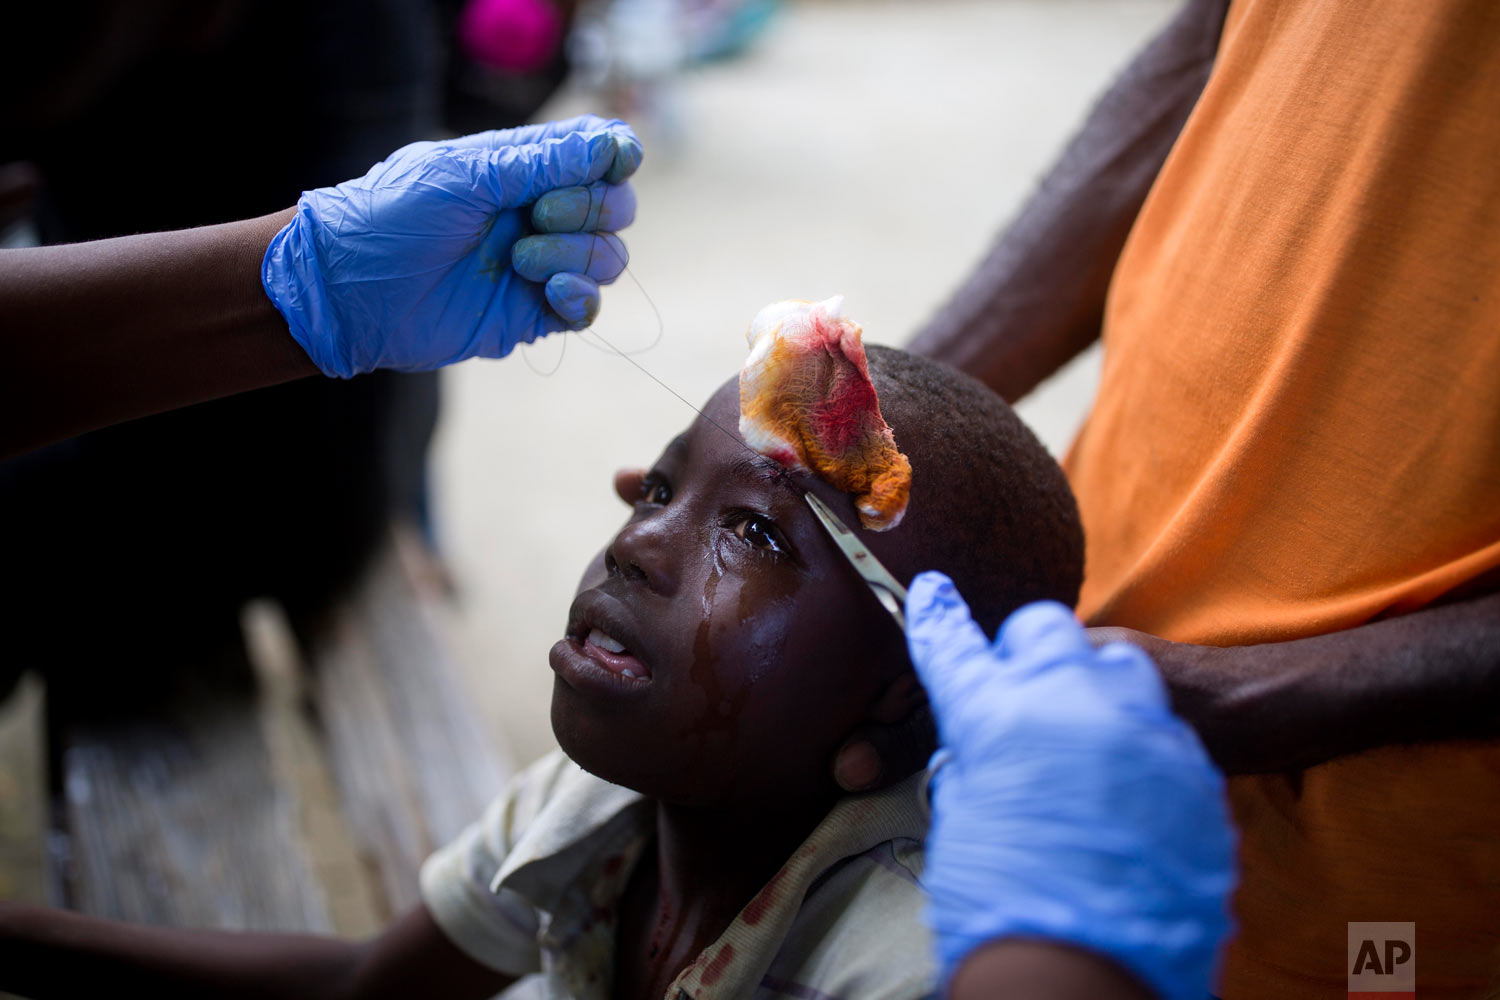 A boy who was injured by an aftershock receives treatment at the general hospital in Port-de-Paix, Haiti, Oct. 7, 2018. A magnitude 5.2 aftershock struck Haiti on Sunday, even as survivors of the previous day's temblor were sifting through the rubble of their cinderblock homes. The death toll stood at 12, with fears it could rise. (AP Photo/Dieu Nalio Chery)